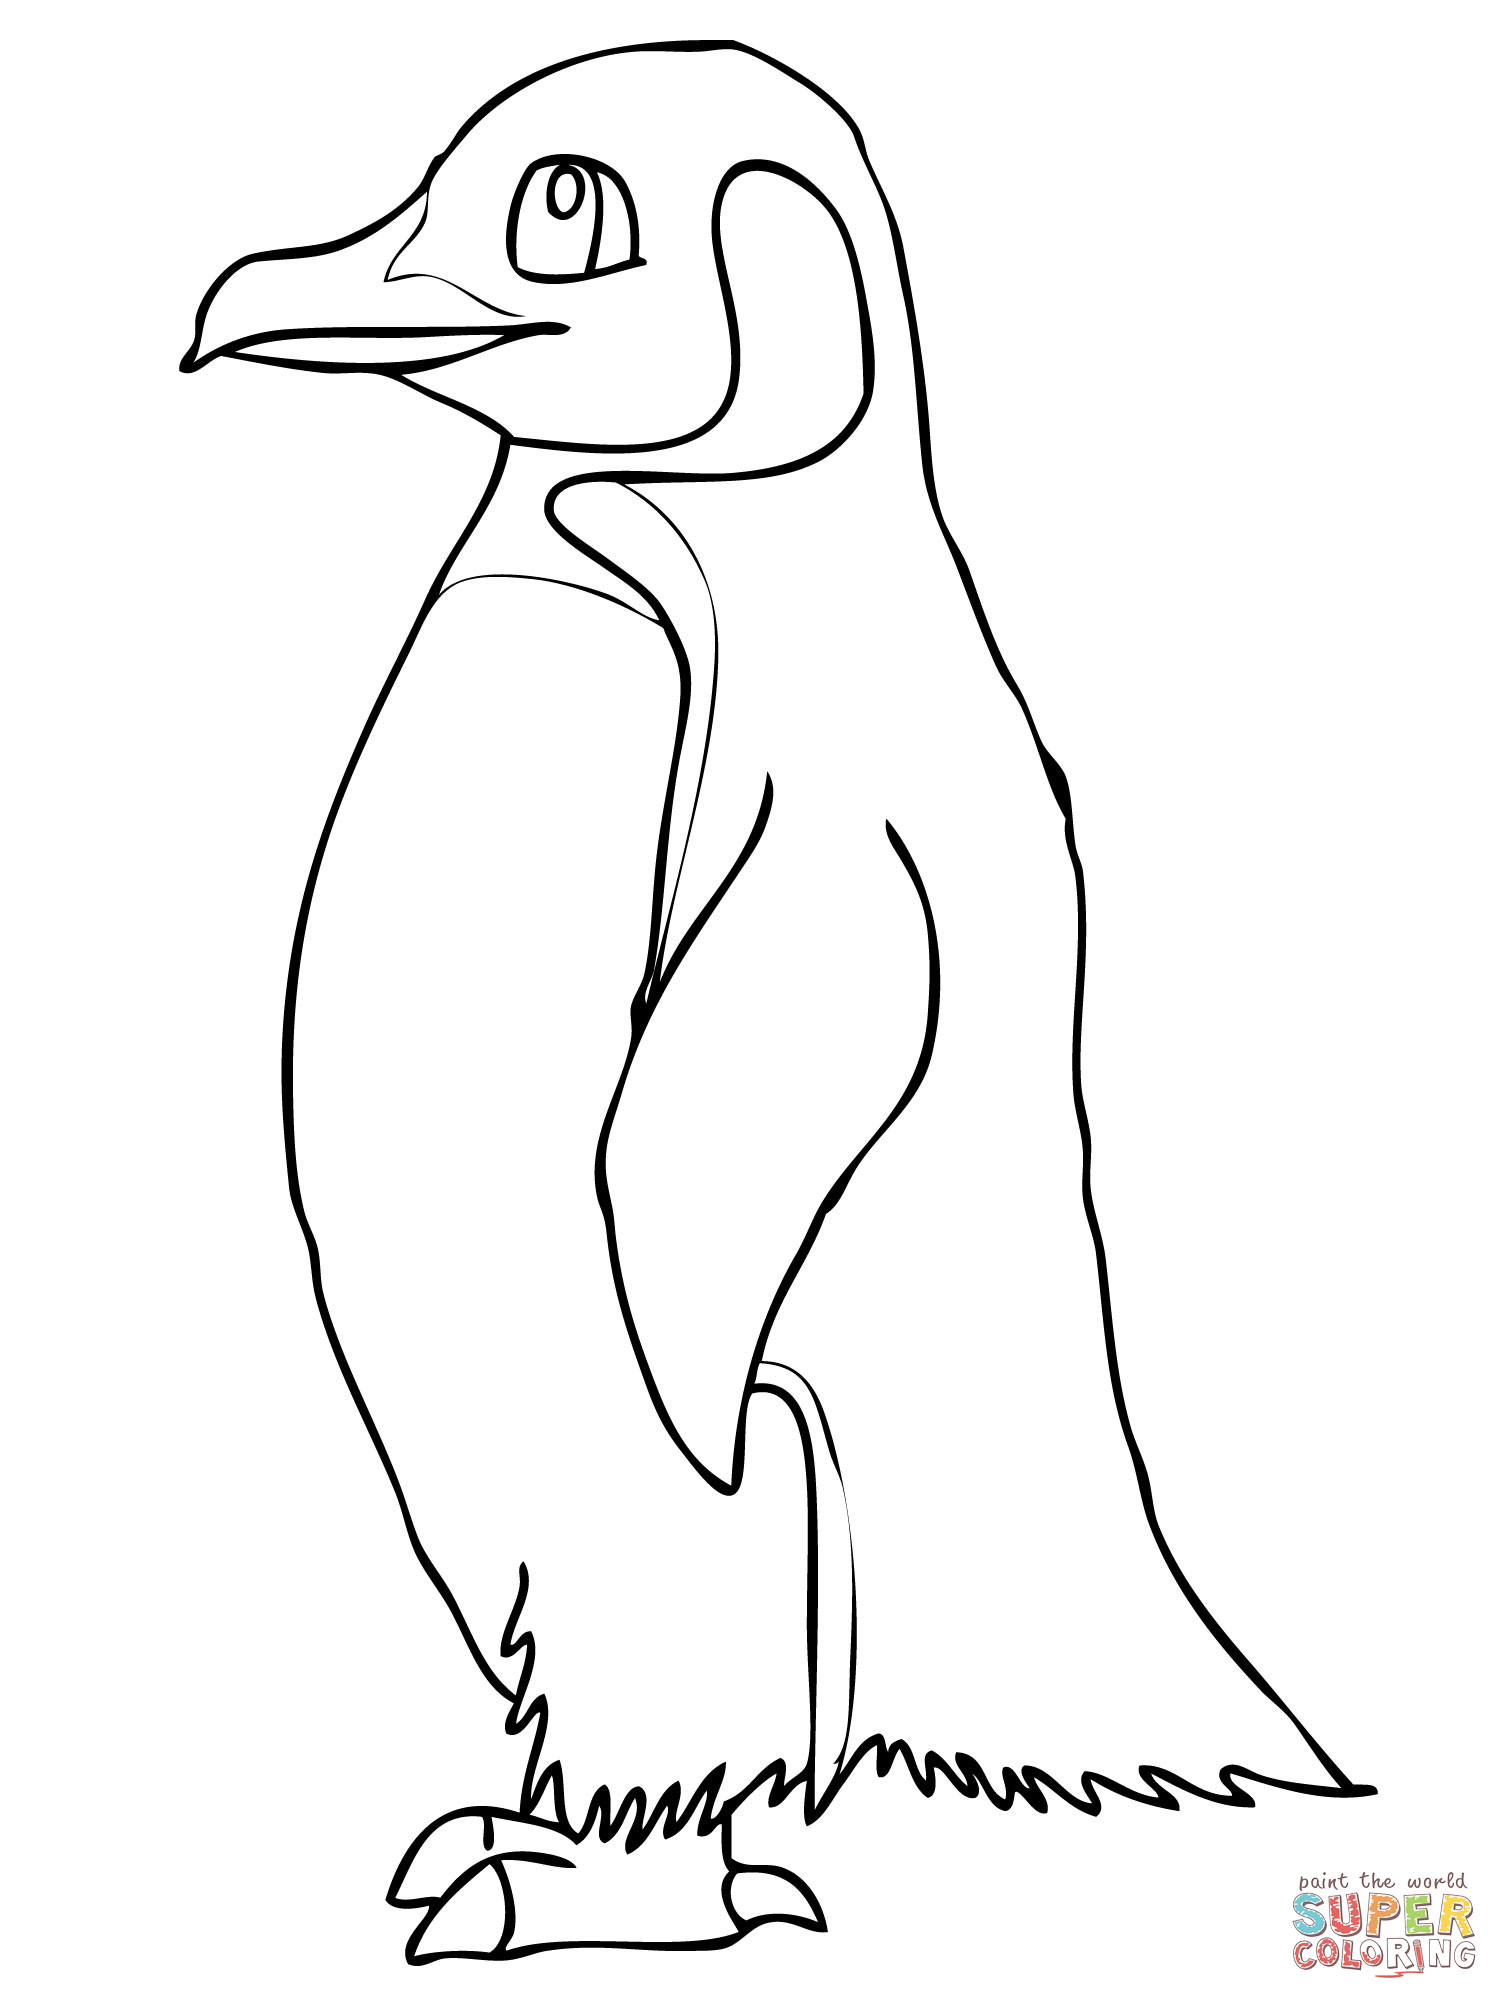 Penguin Coloring Pages : Cute Penguin Family Coloring Page